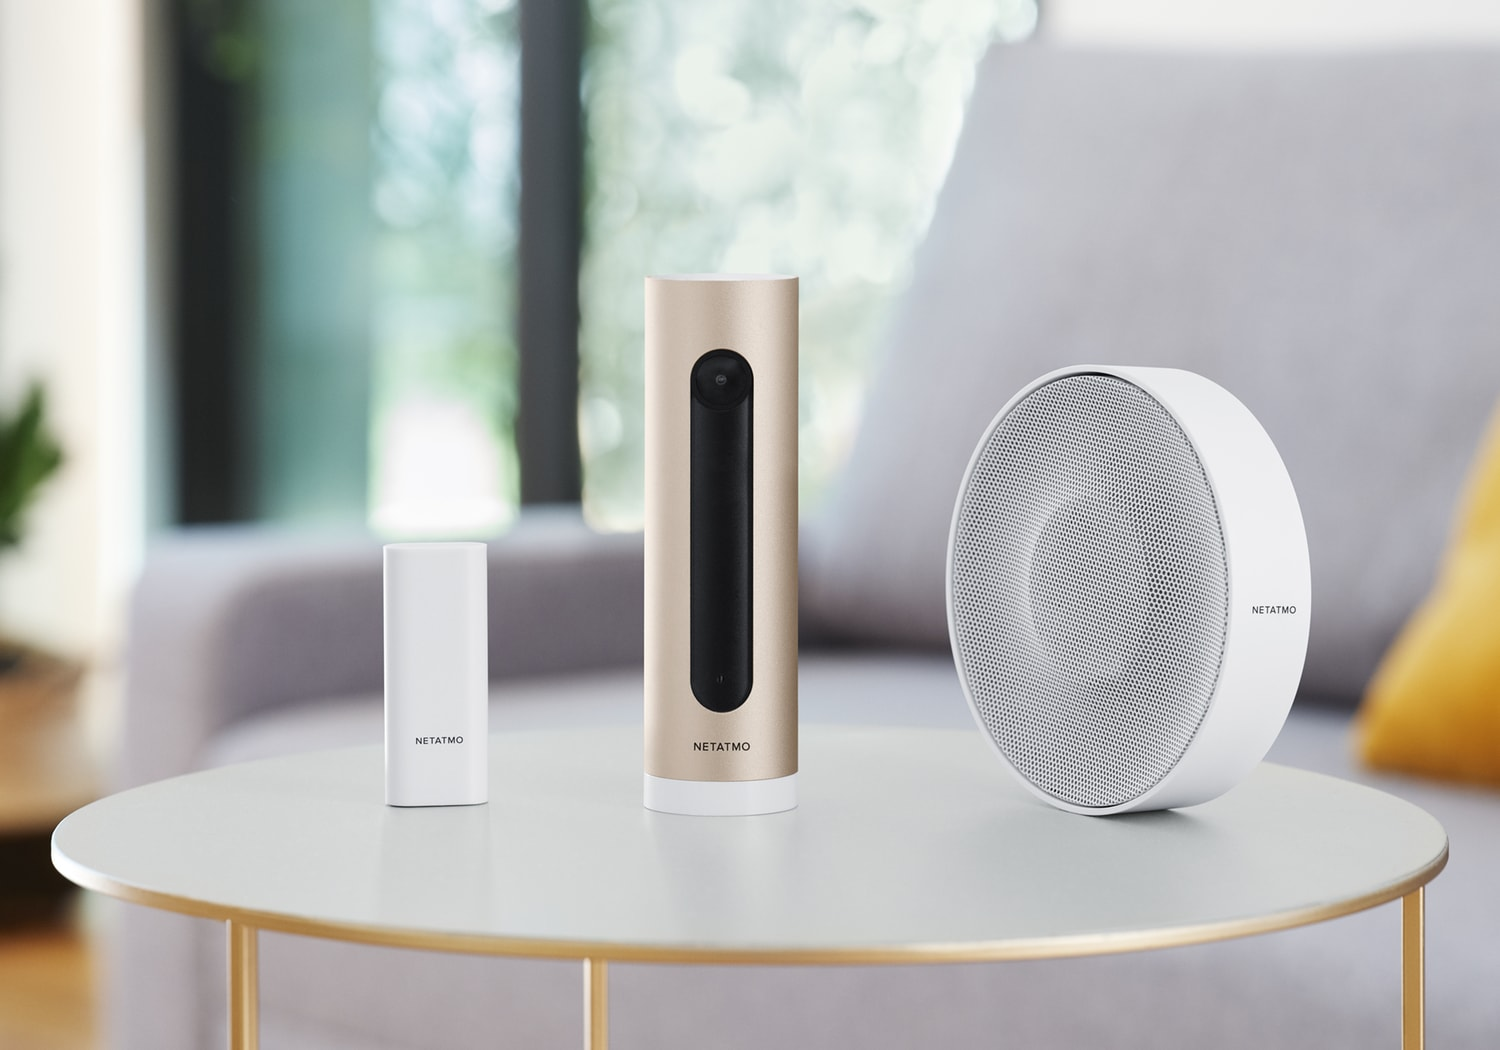 Netatmo adds support for Apple's HomeKit Secure Video standard to its Smart Indoor Camera.